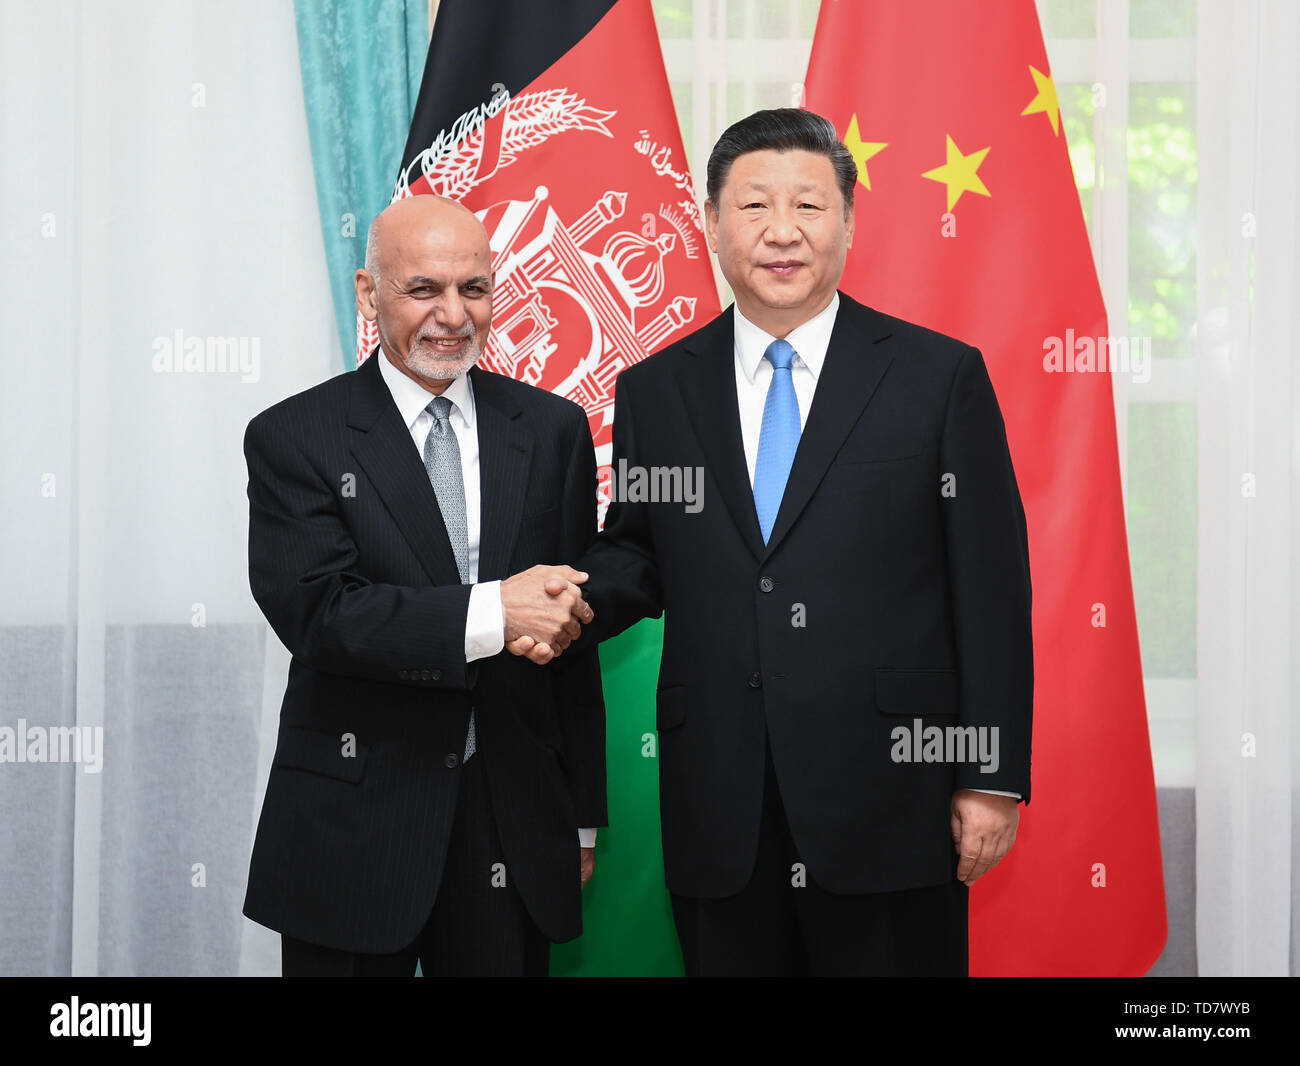 Bishkek, Kyrgyzstan. 13th June, 2019. Chinese President Xi Jinping meets with Afghan President Mohammad Ashraf Ghani in Bishkek, Kyrgyzstan, June 13, 2019. Credit: Xie Huanchi/Xinhua/Alamy Live News - Stock Image